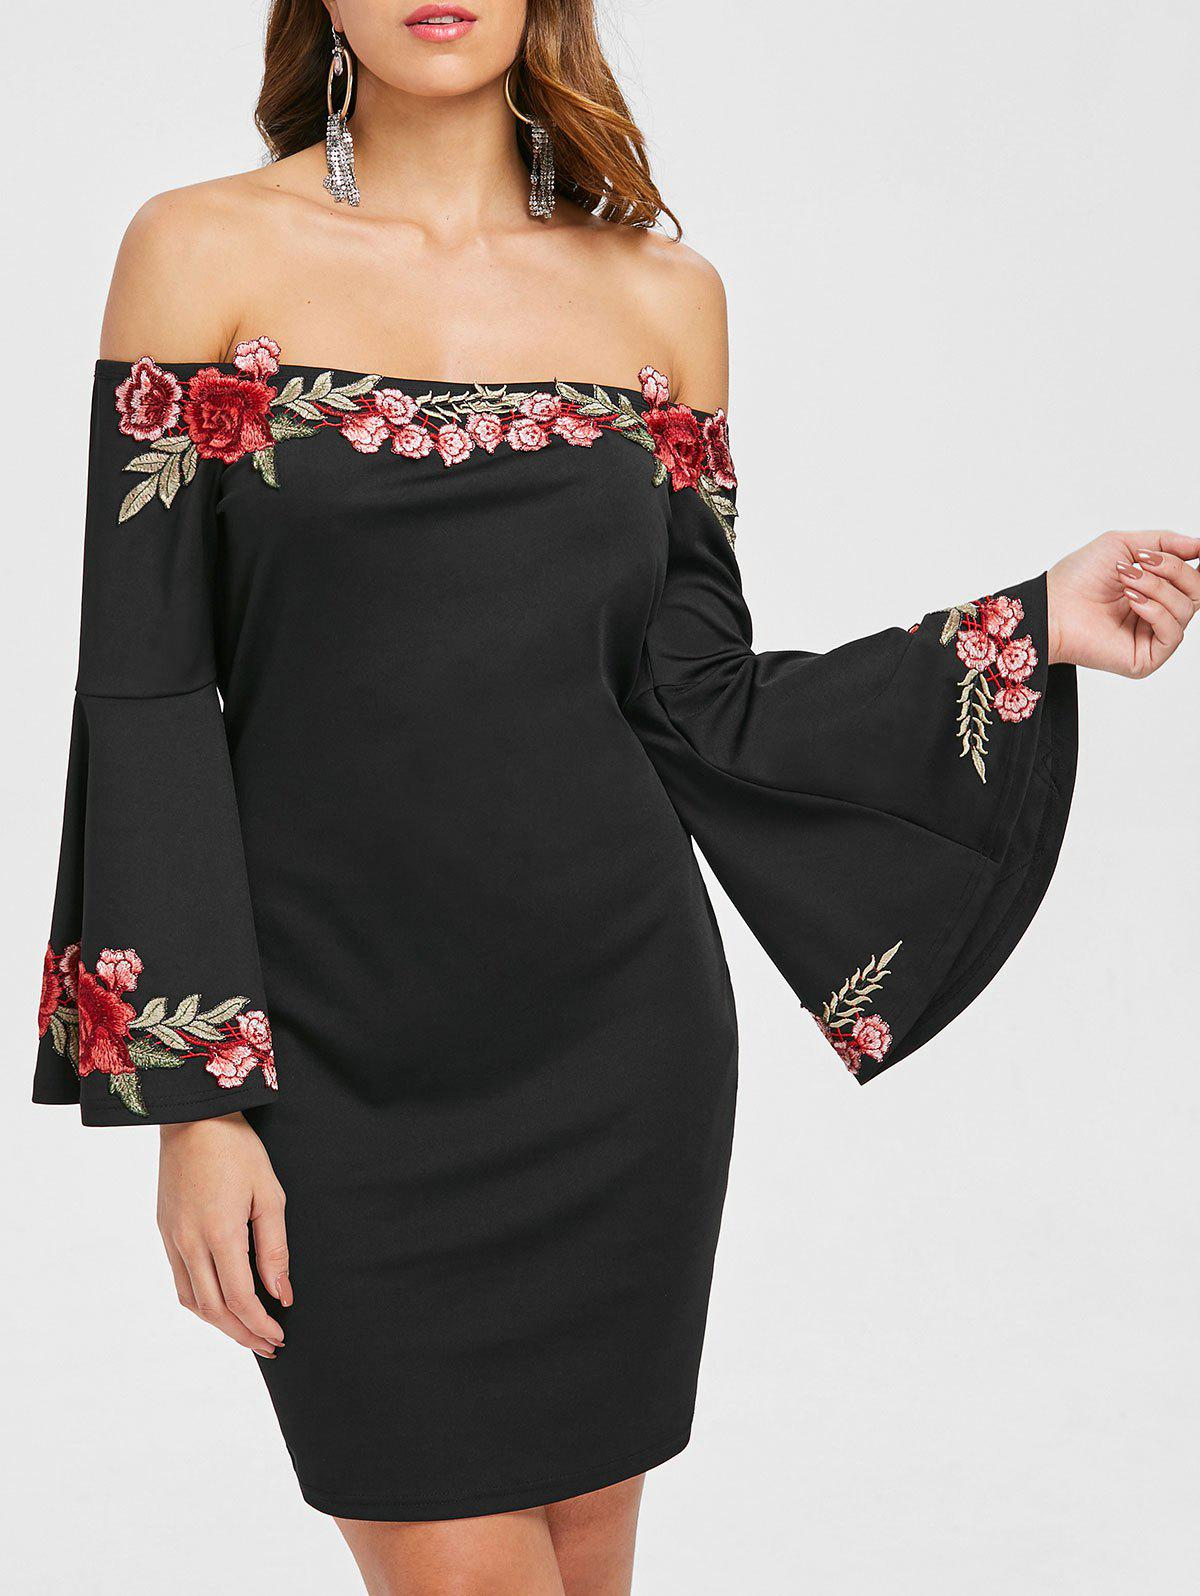 New Floral Embroidery Off The Shoulder Dress